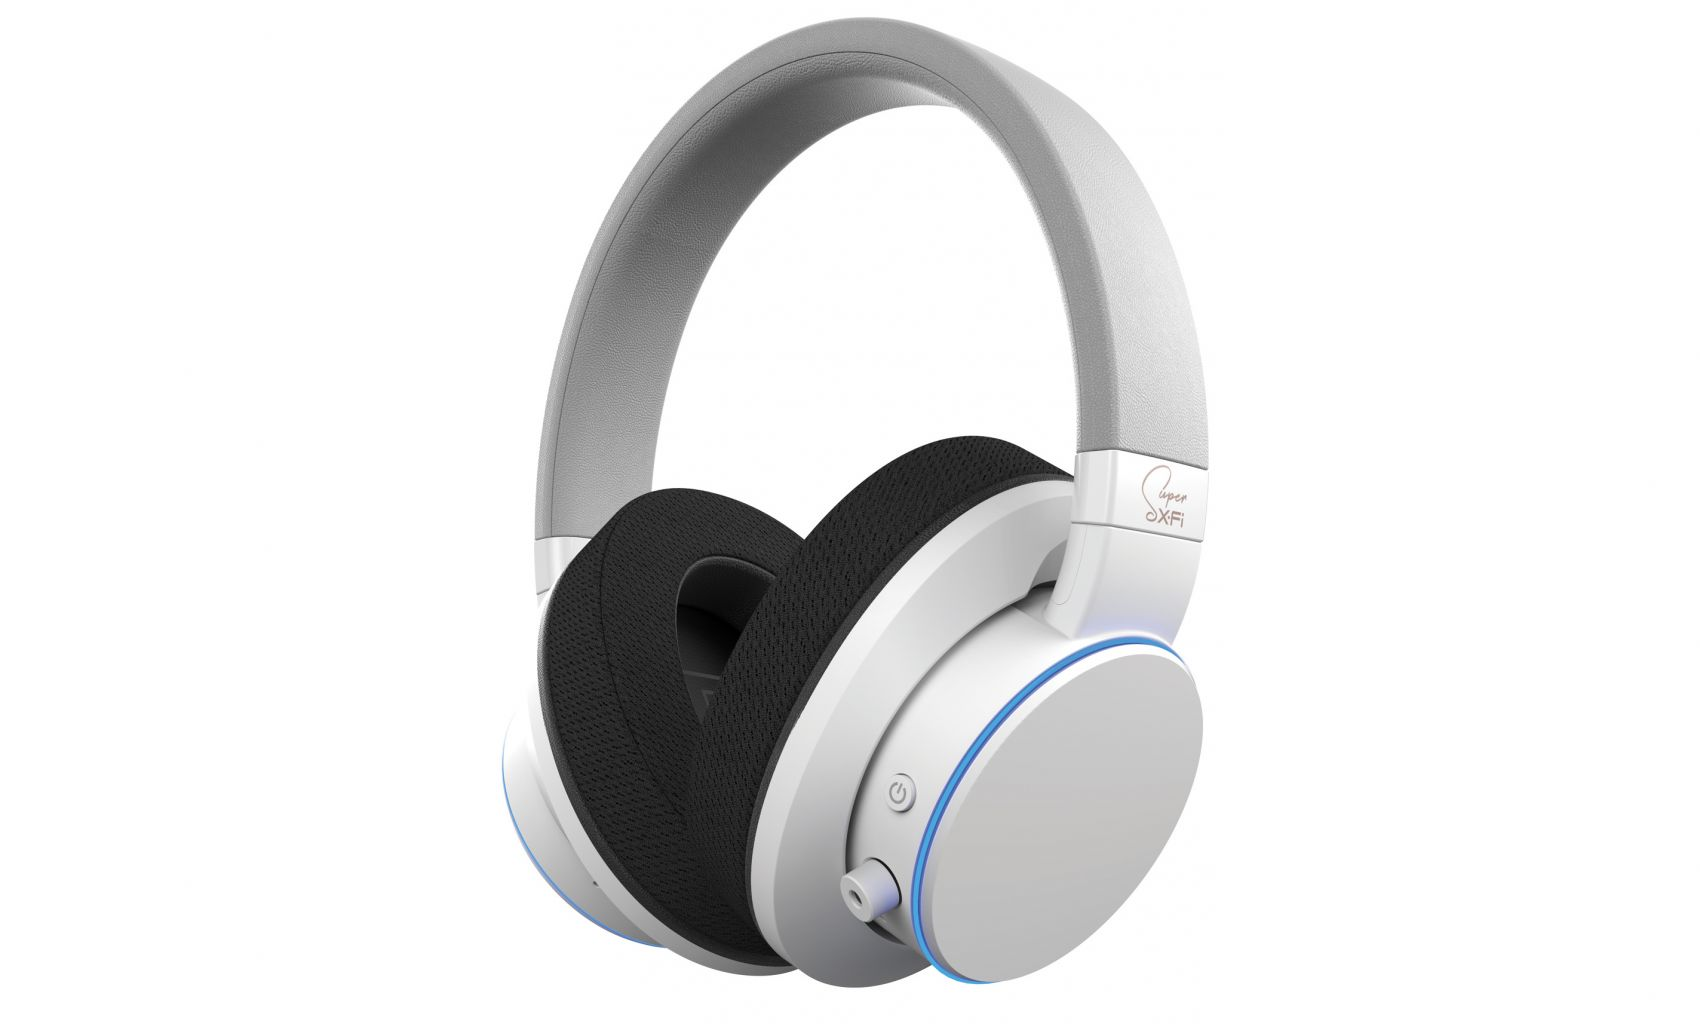 8c5b1b551a0 Creative Unveils the Outlier Bluetooth MP3 Headphones | Invision ...